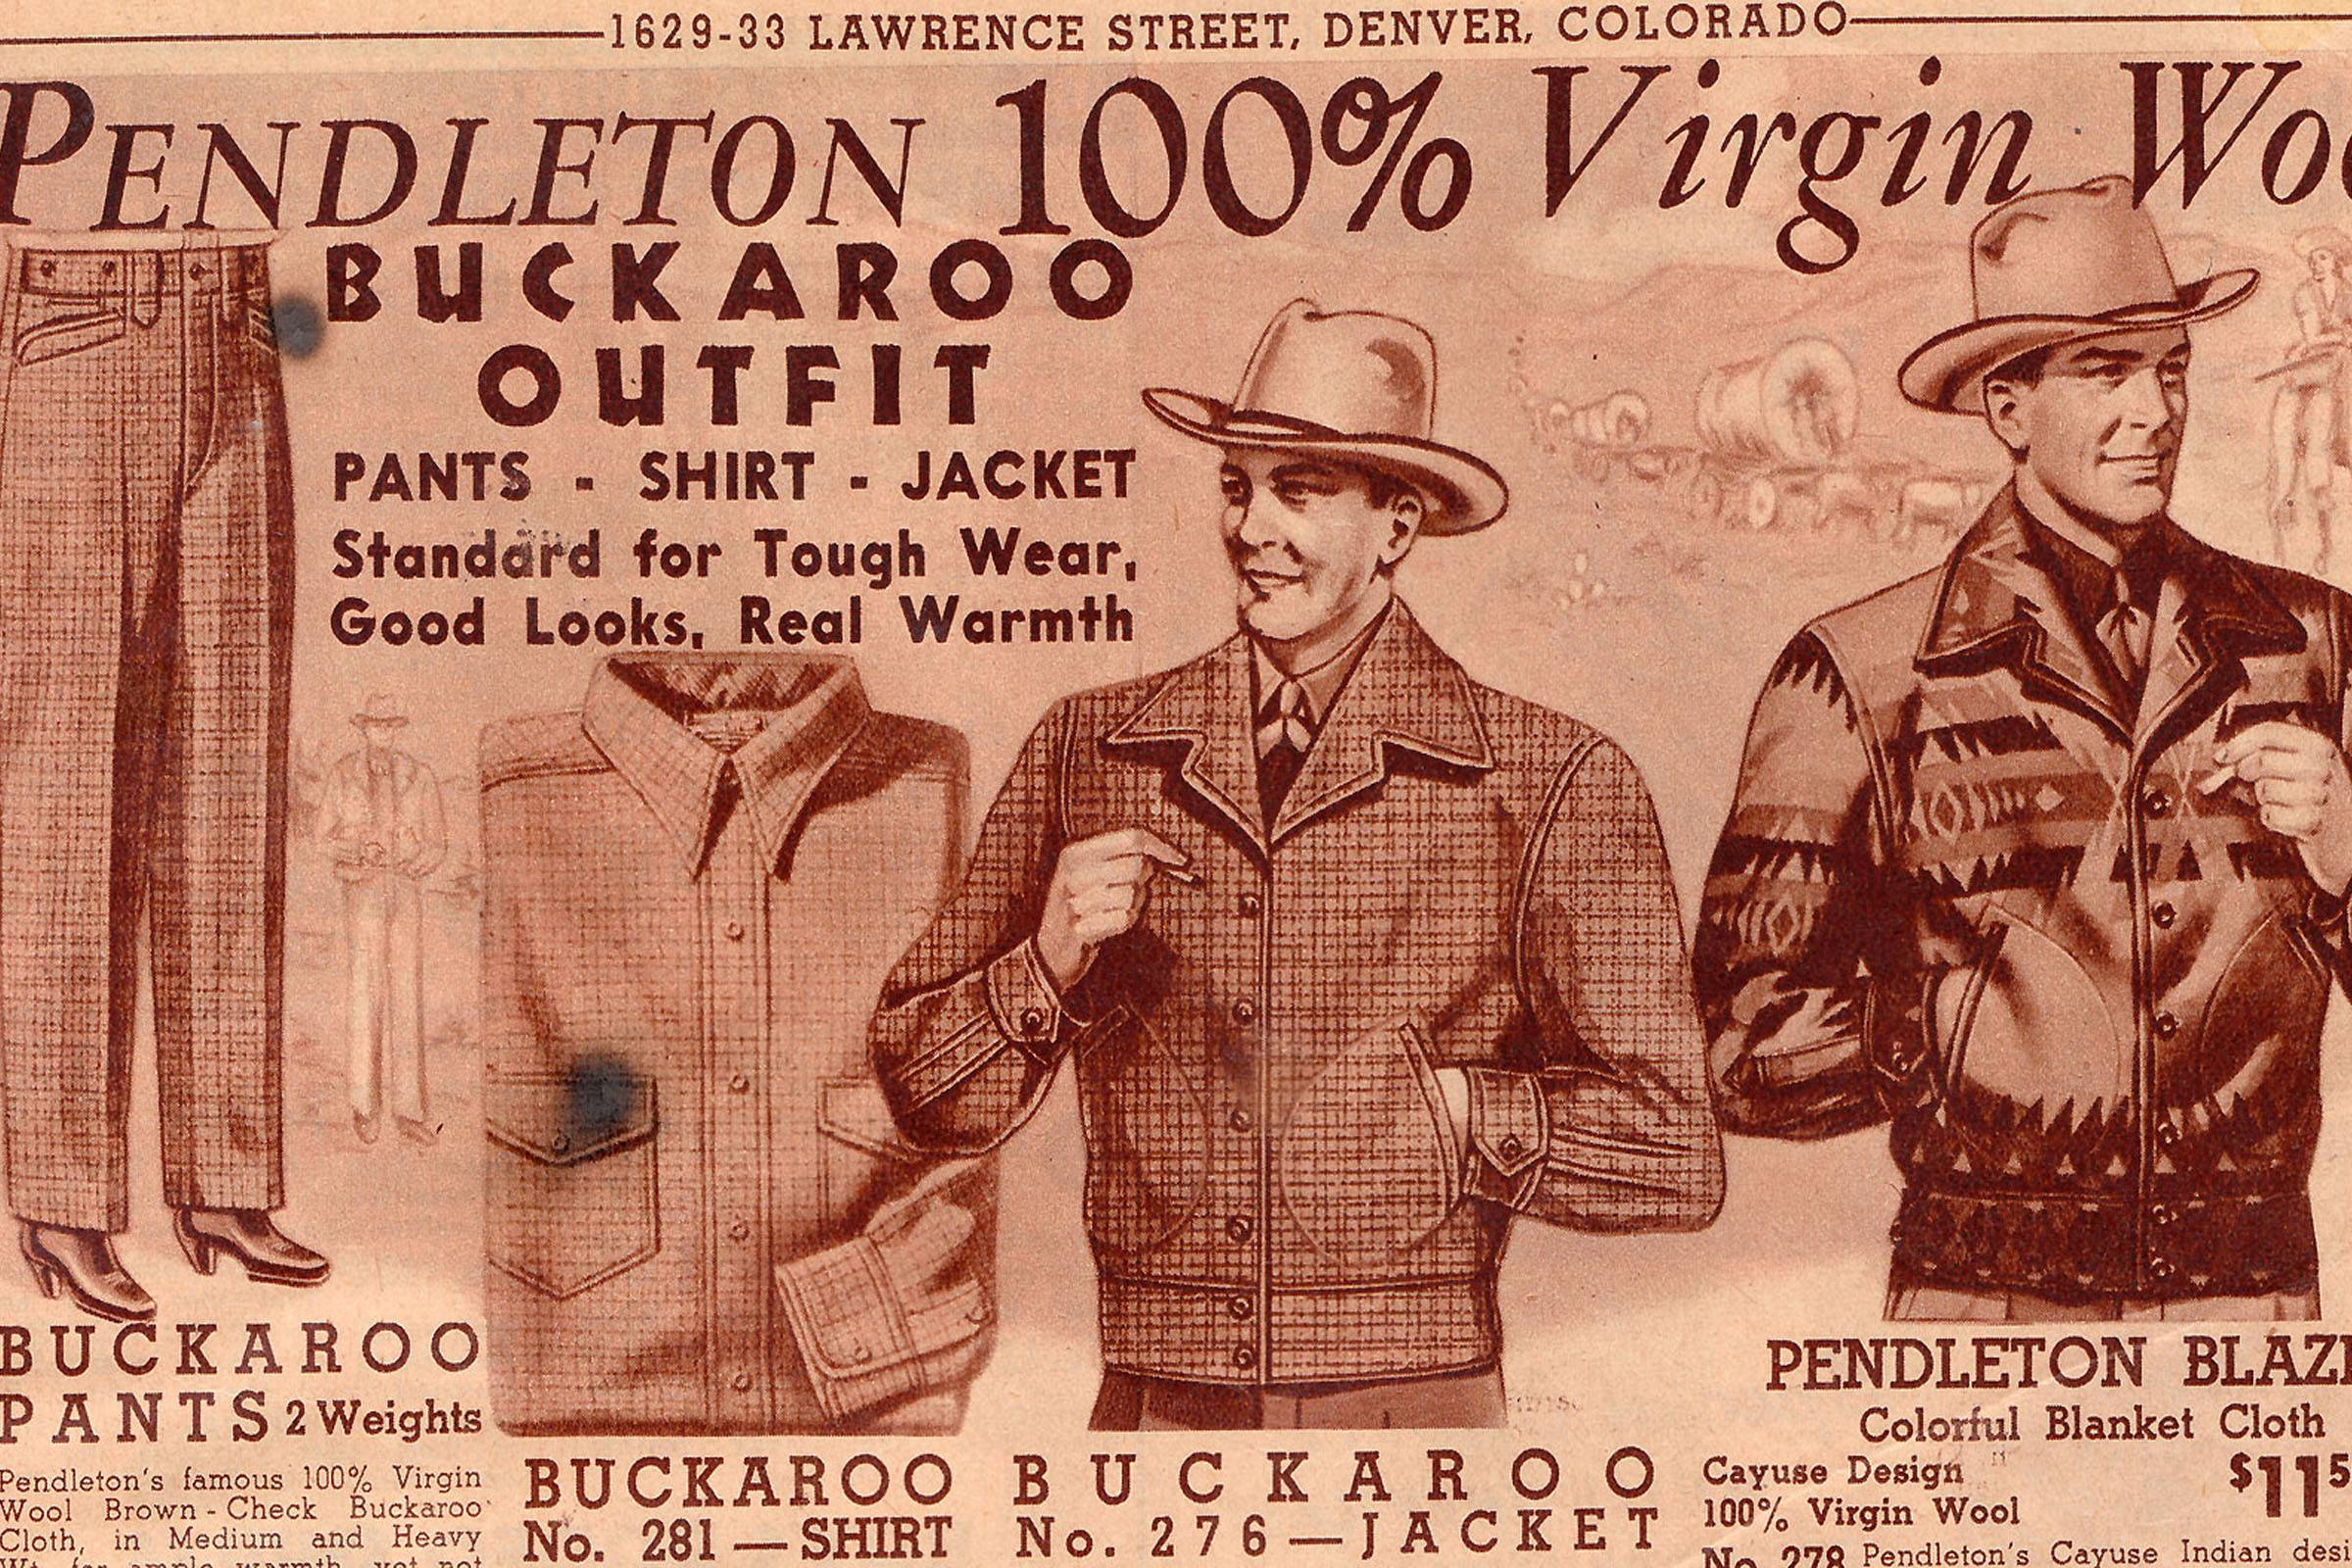 A Pendleton ad, seen in a 1941-1942 Stockman Farmer catalog